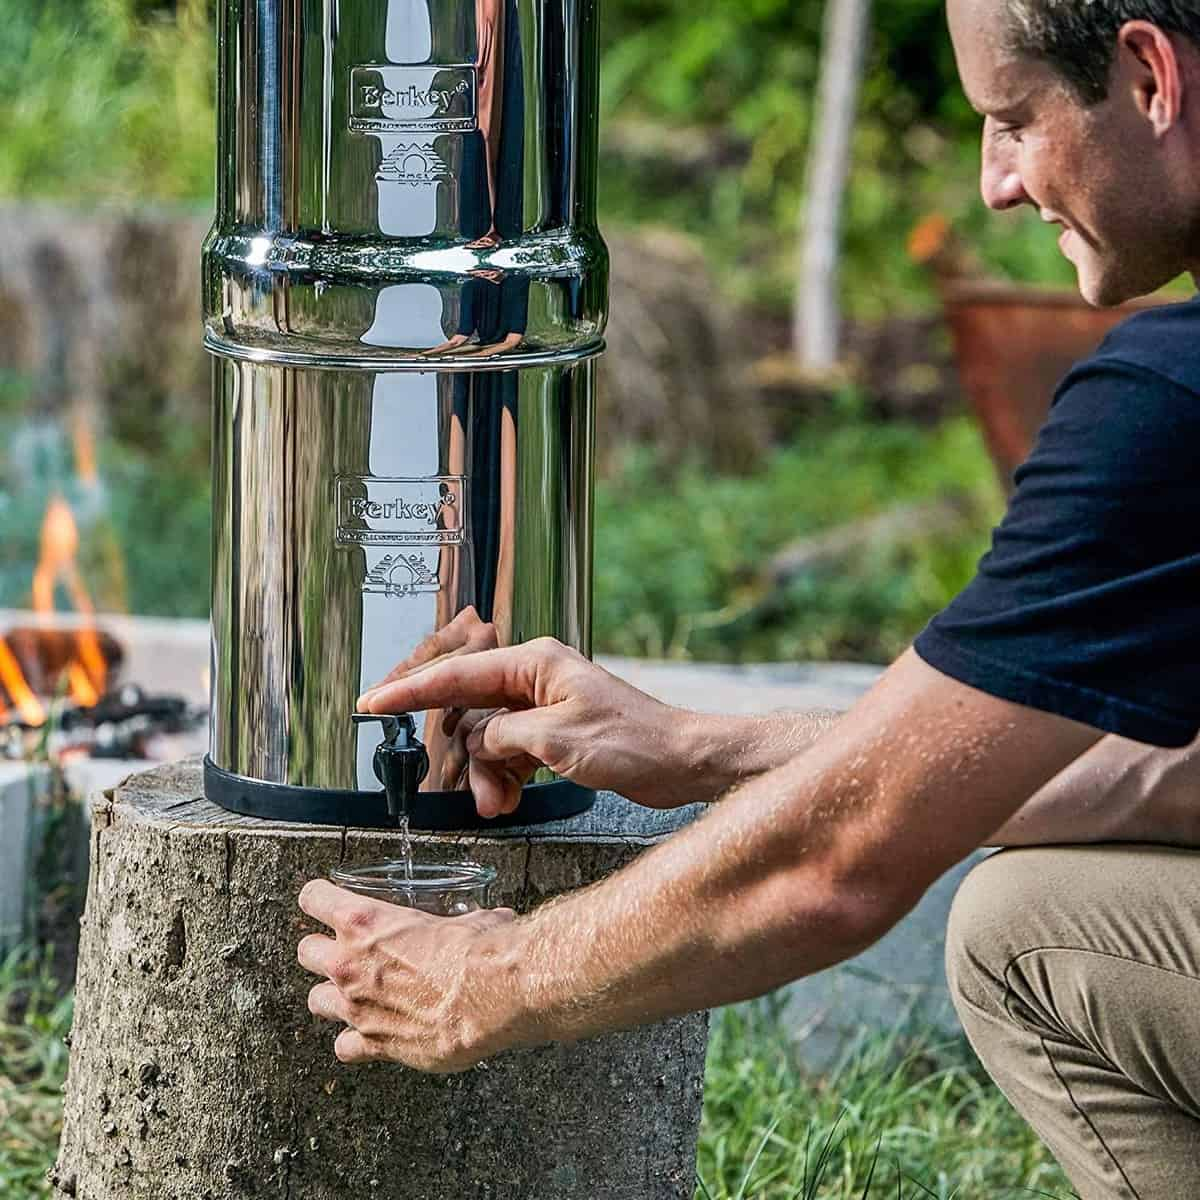 How to Choose the Best Gravity Water Filter